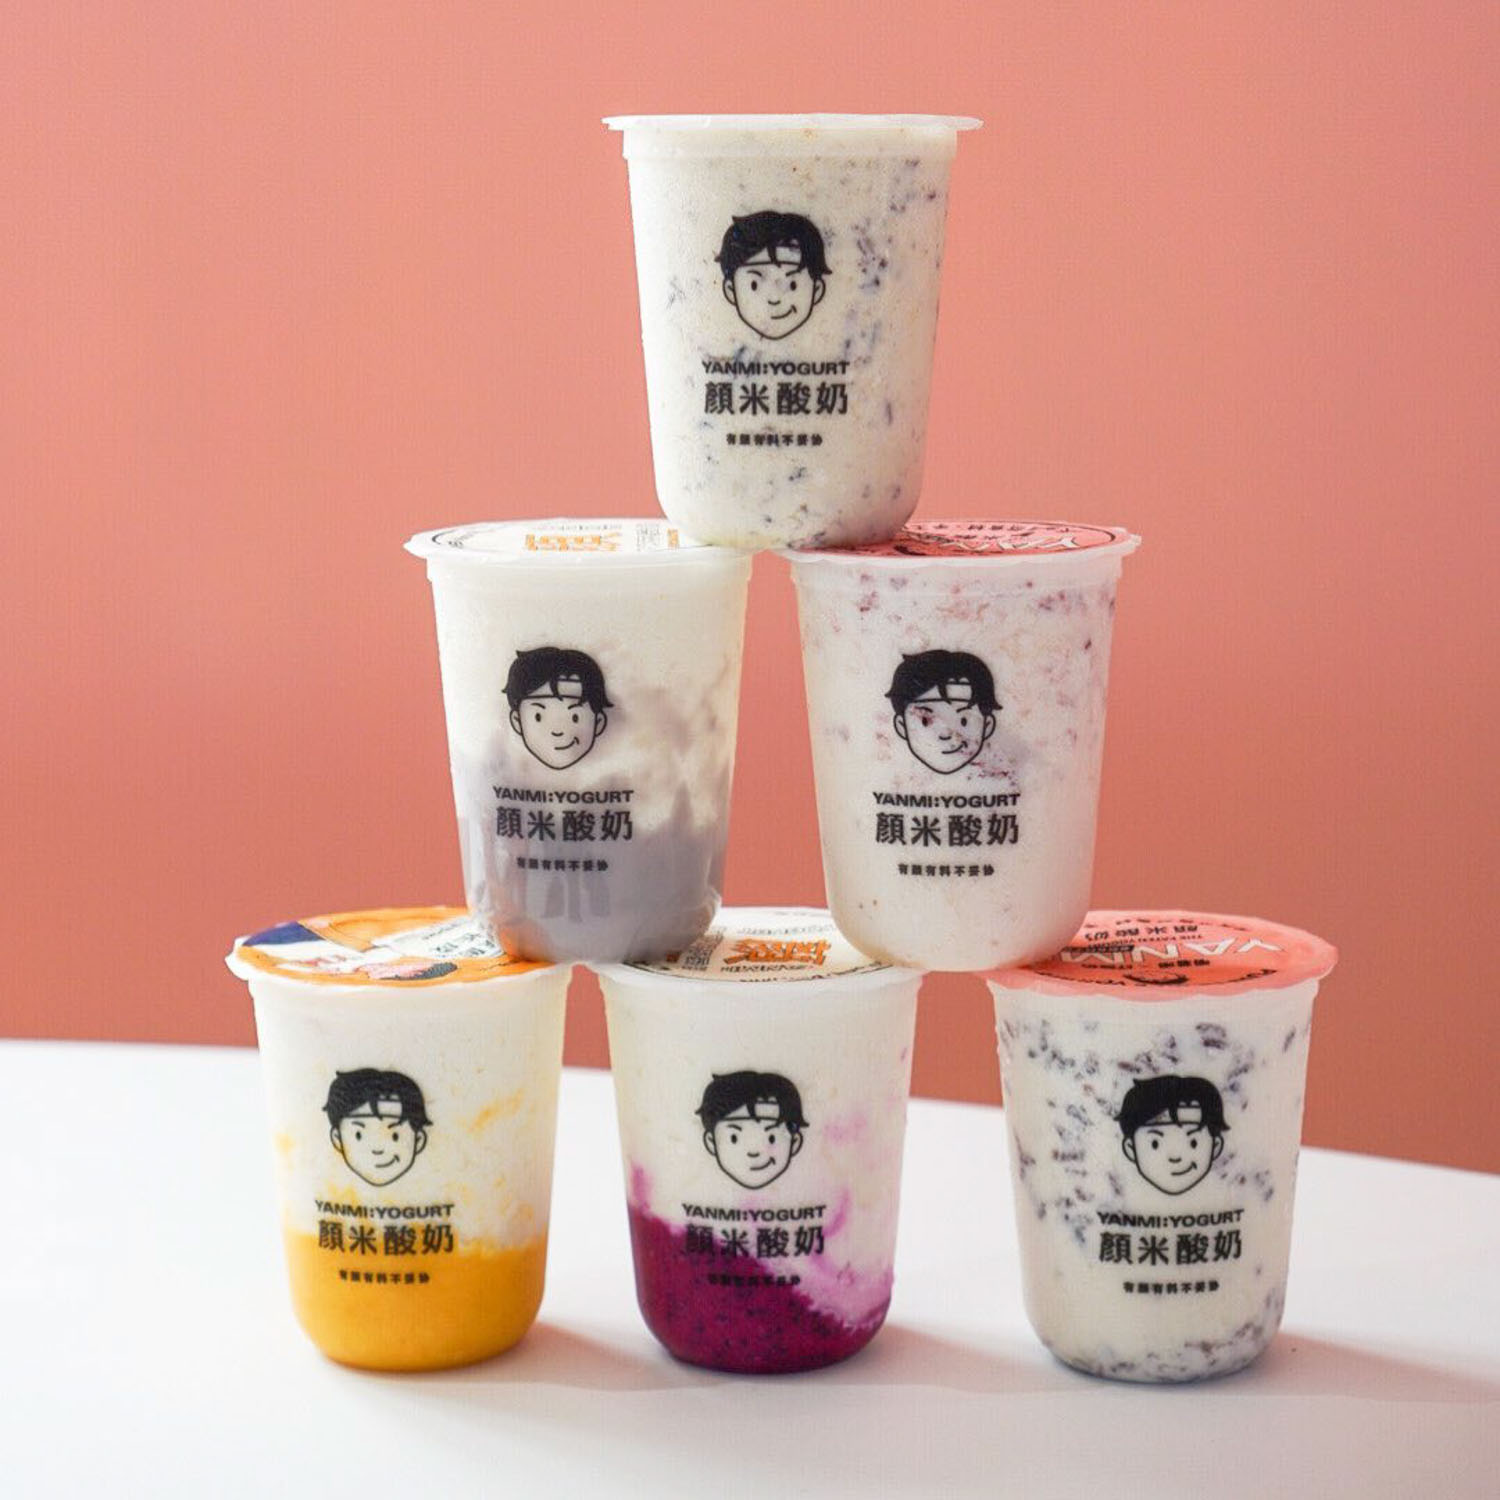 Bubble Tea Shops - Yanmi Yogurt